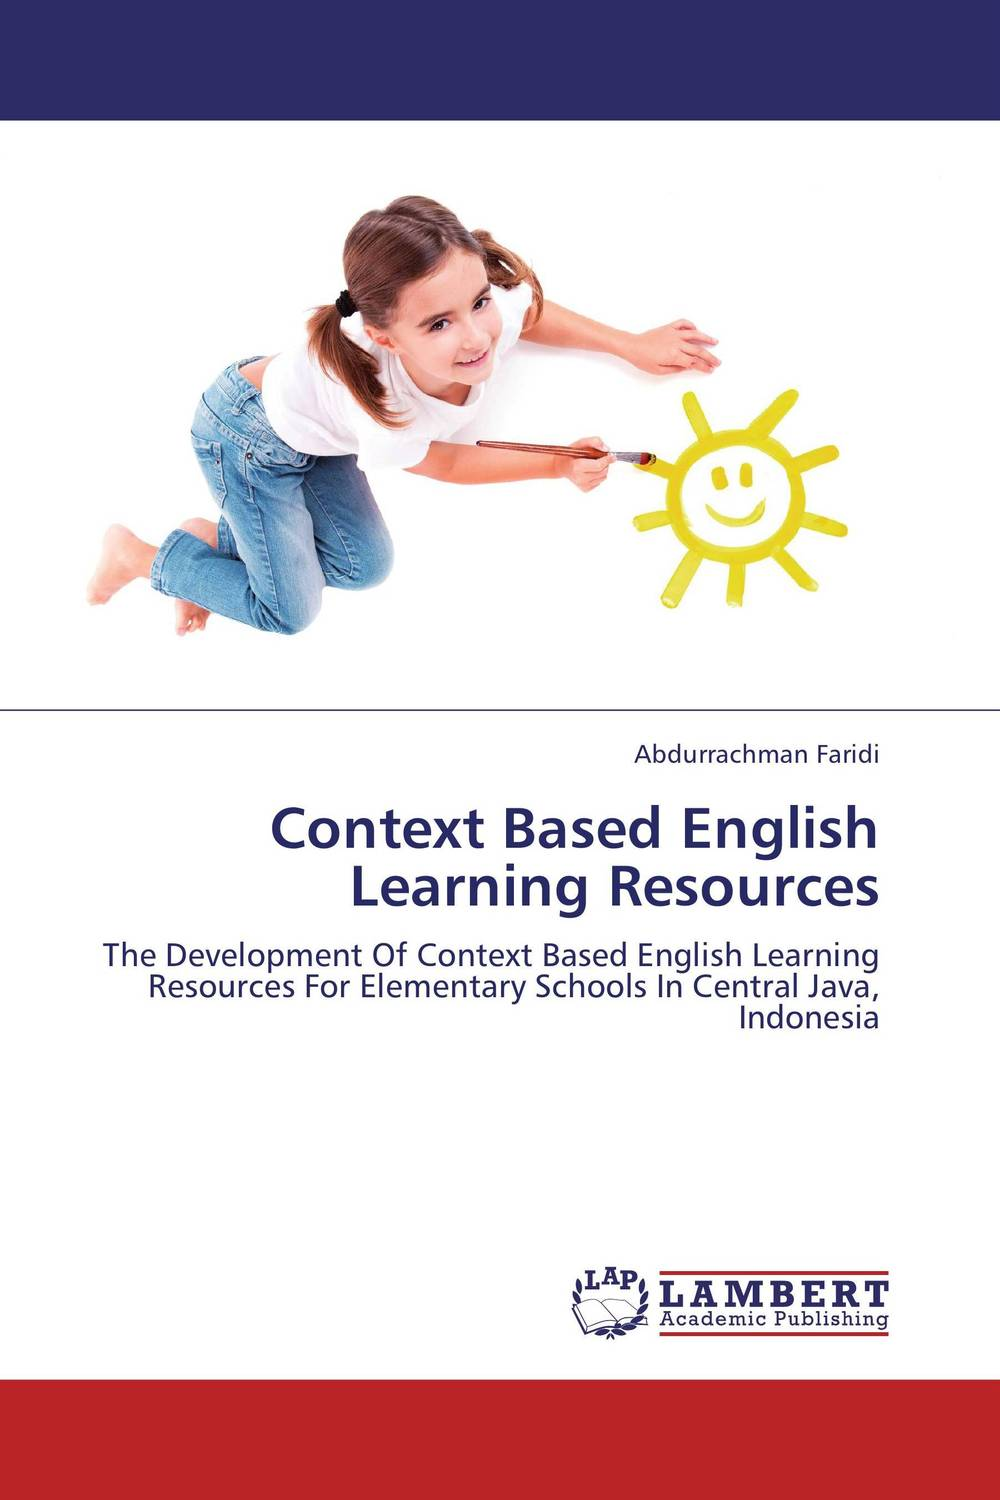 Context Based English Learning Resources pso based evolutionary learning